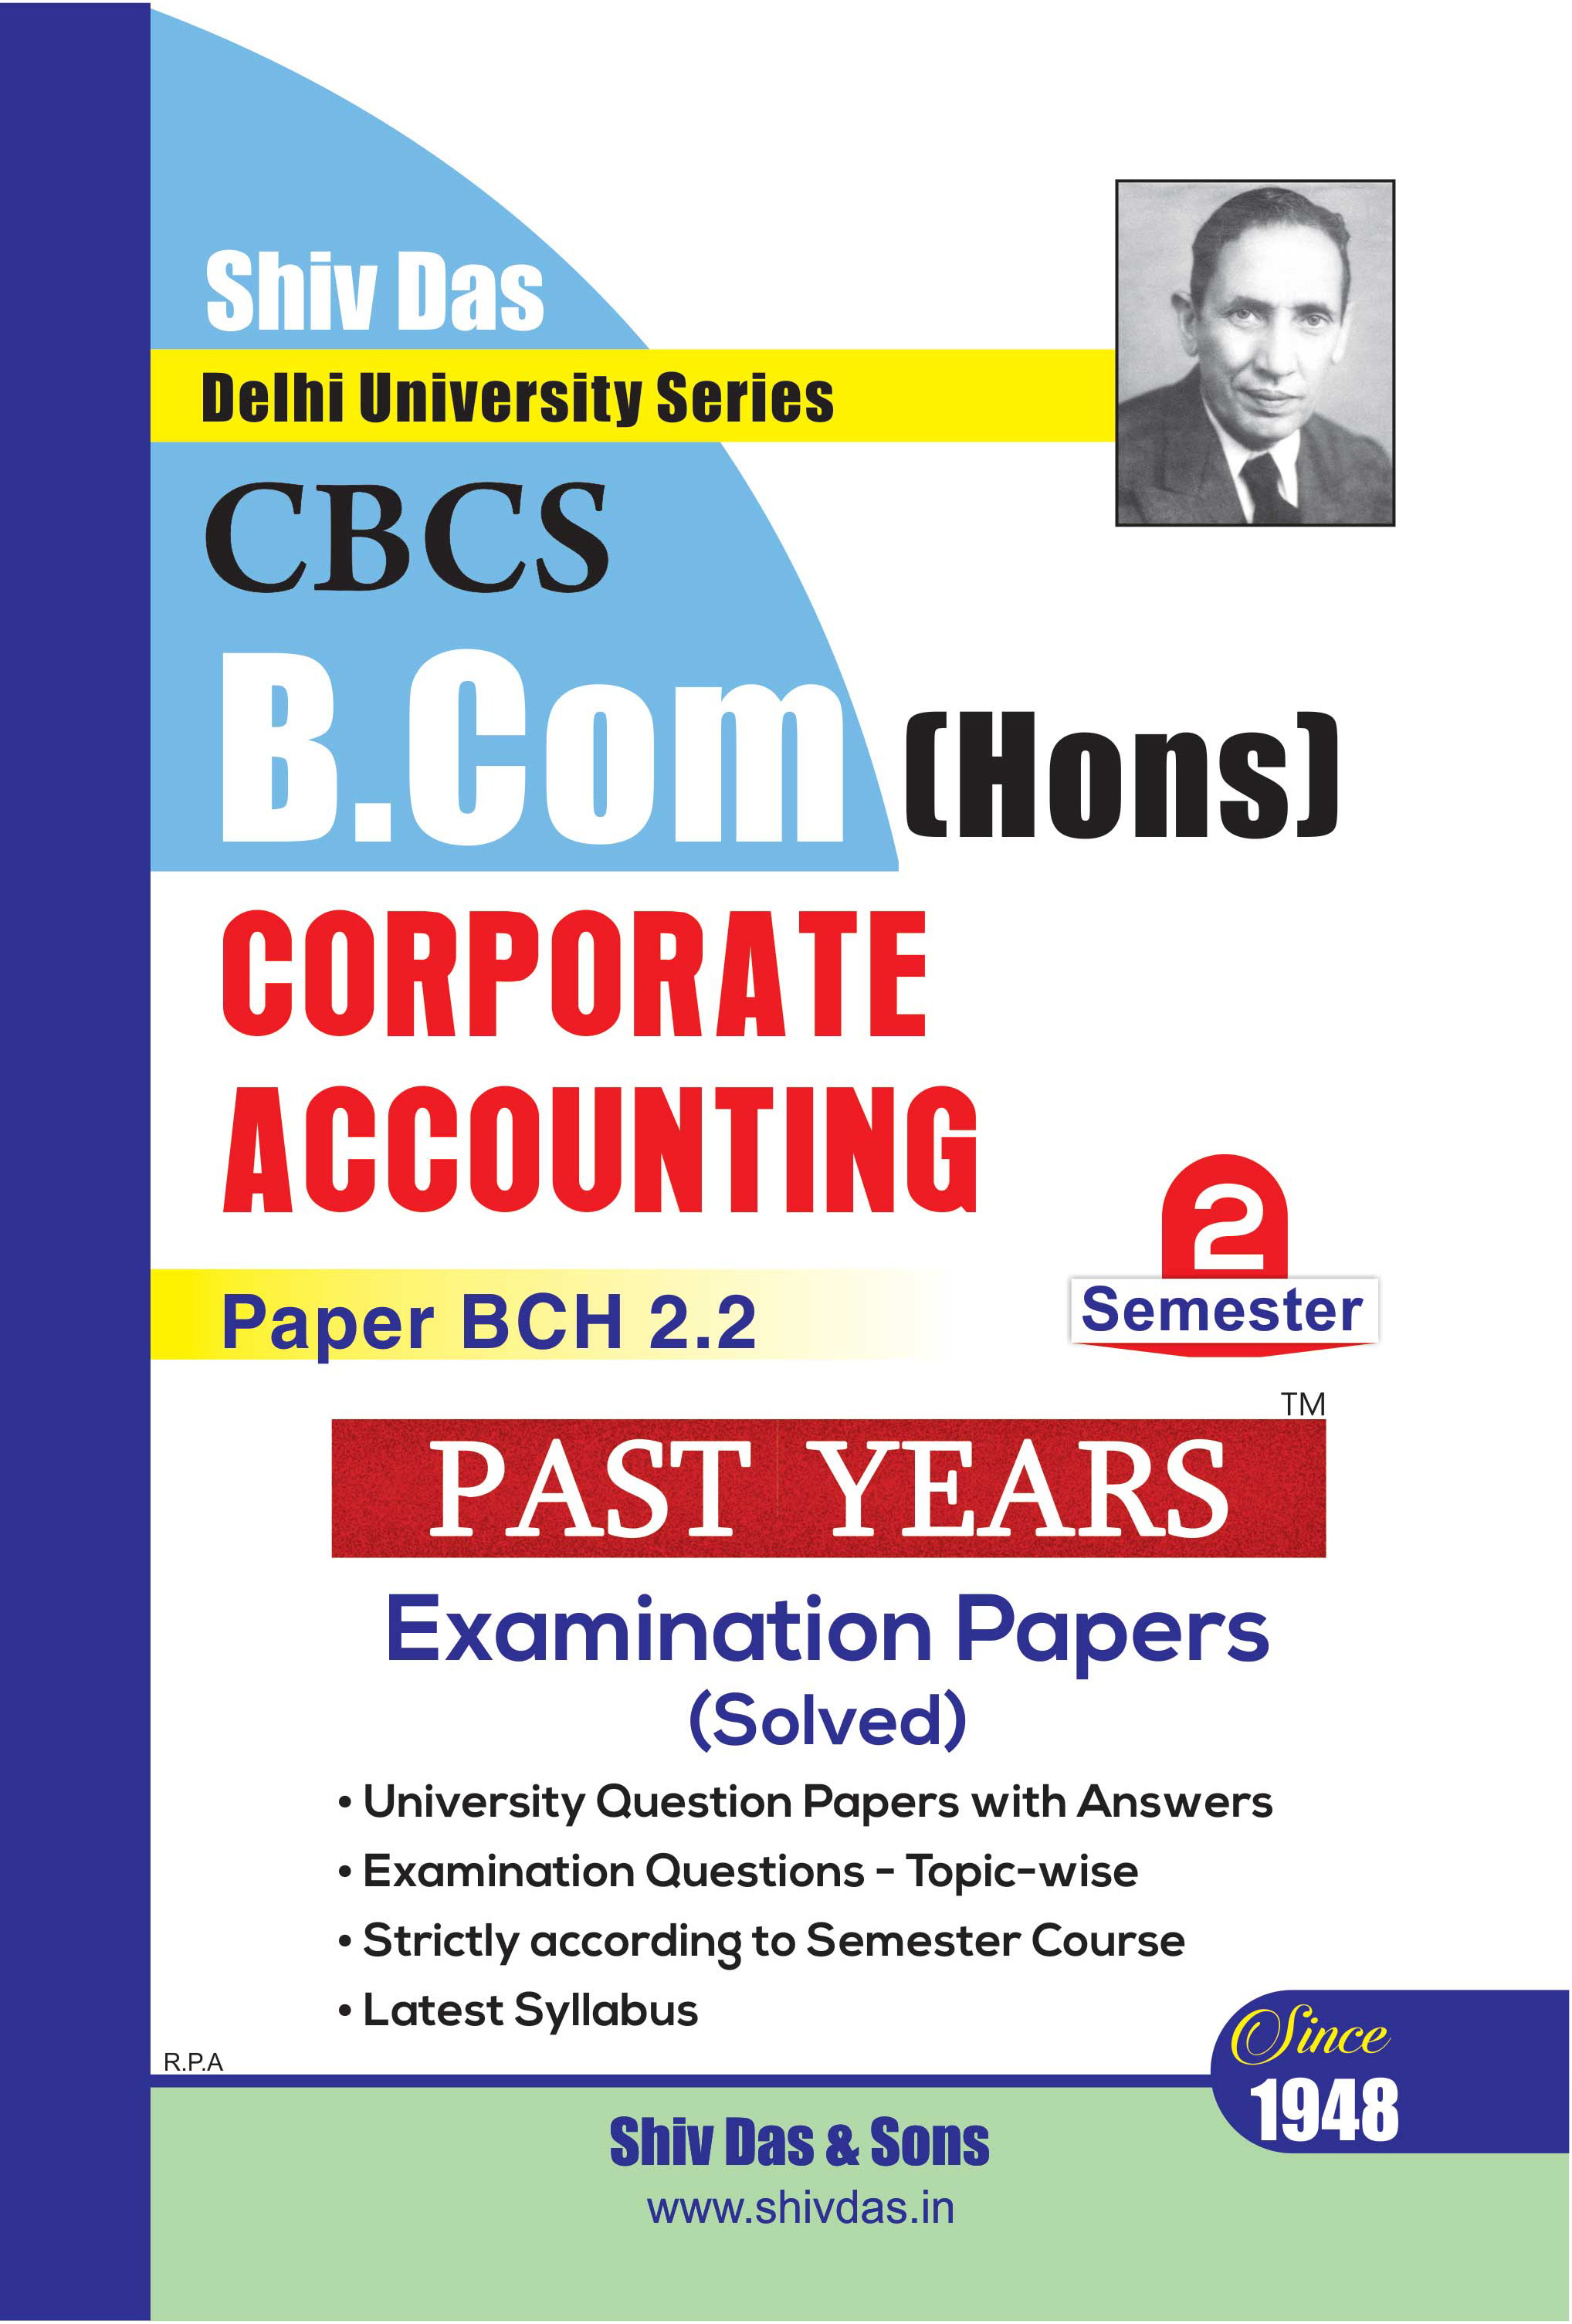 Corporate Accounting for B.Com Hons Semester-2 for Delhi University by Shiv Das